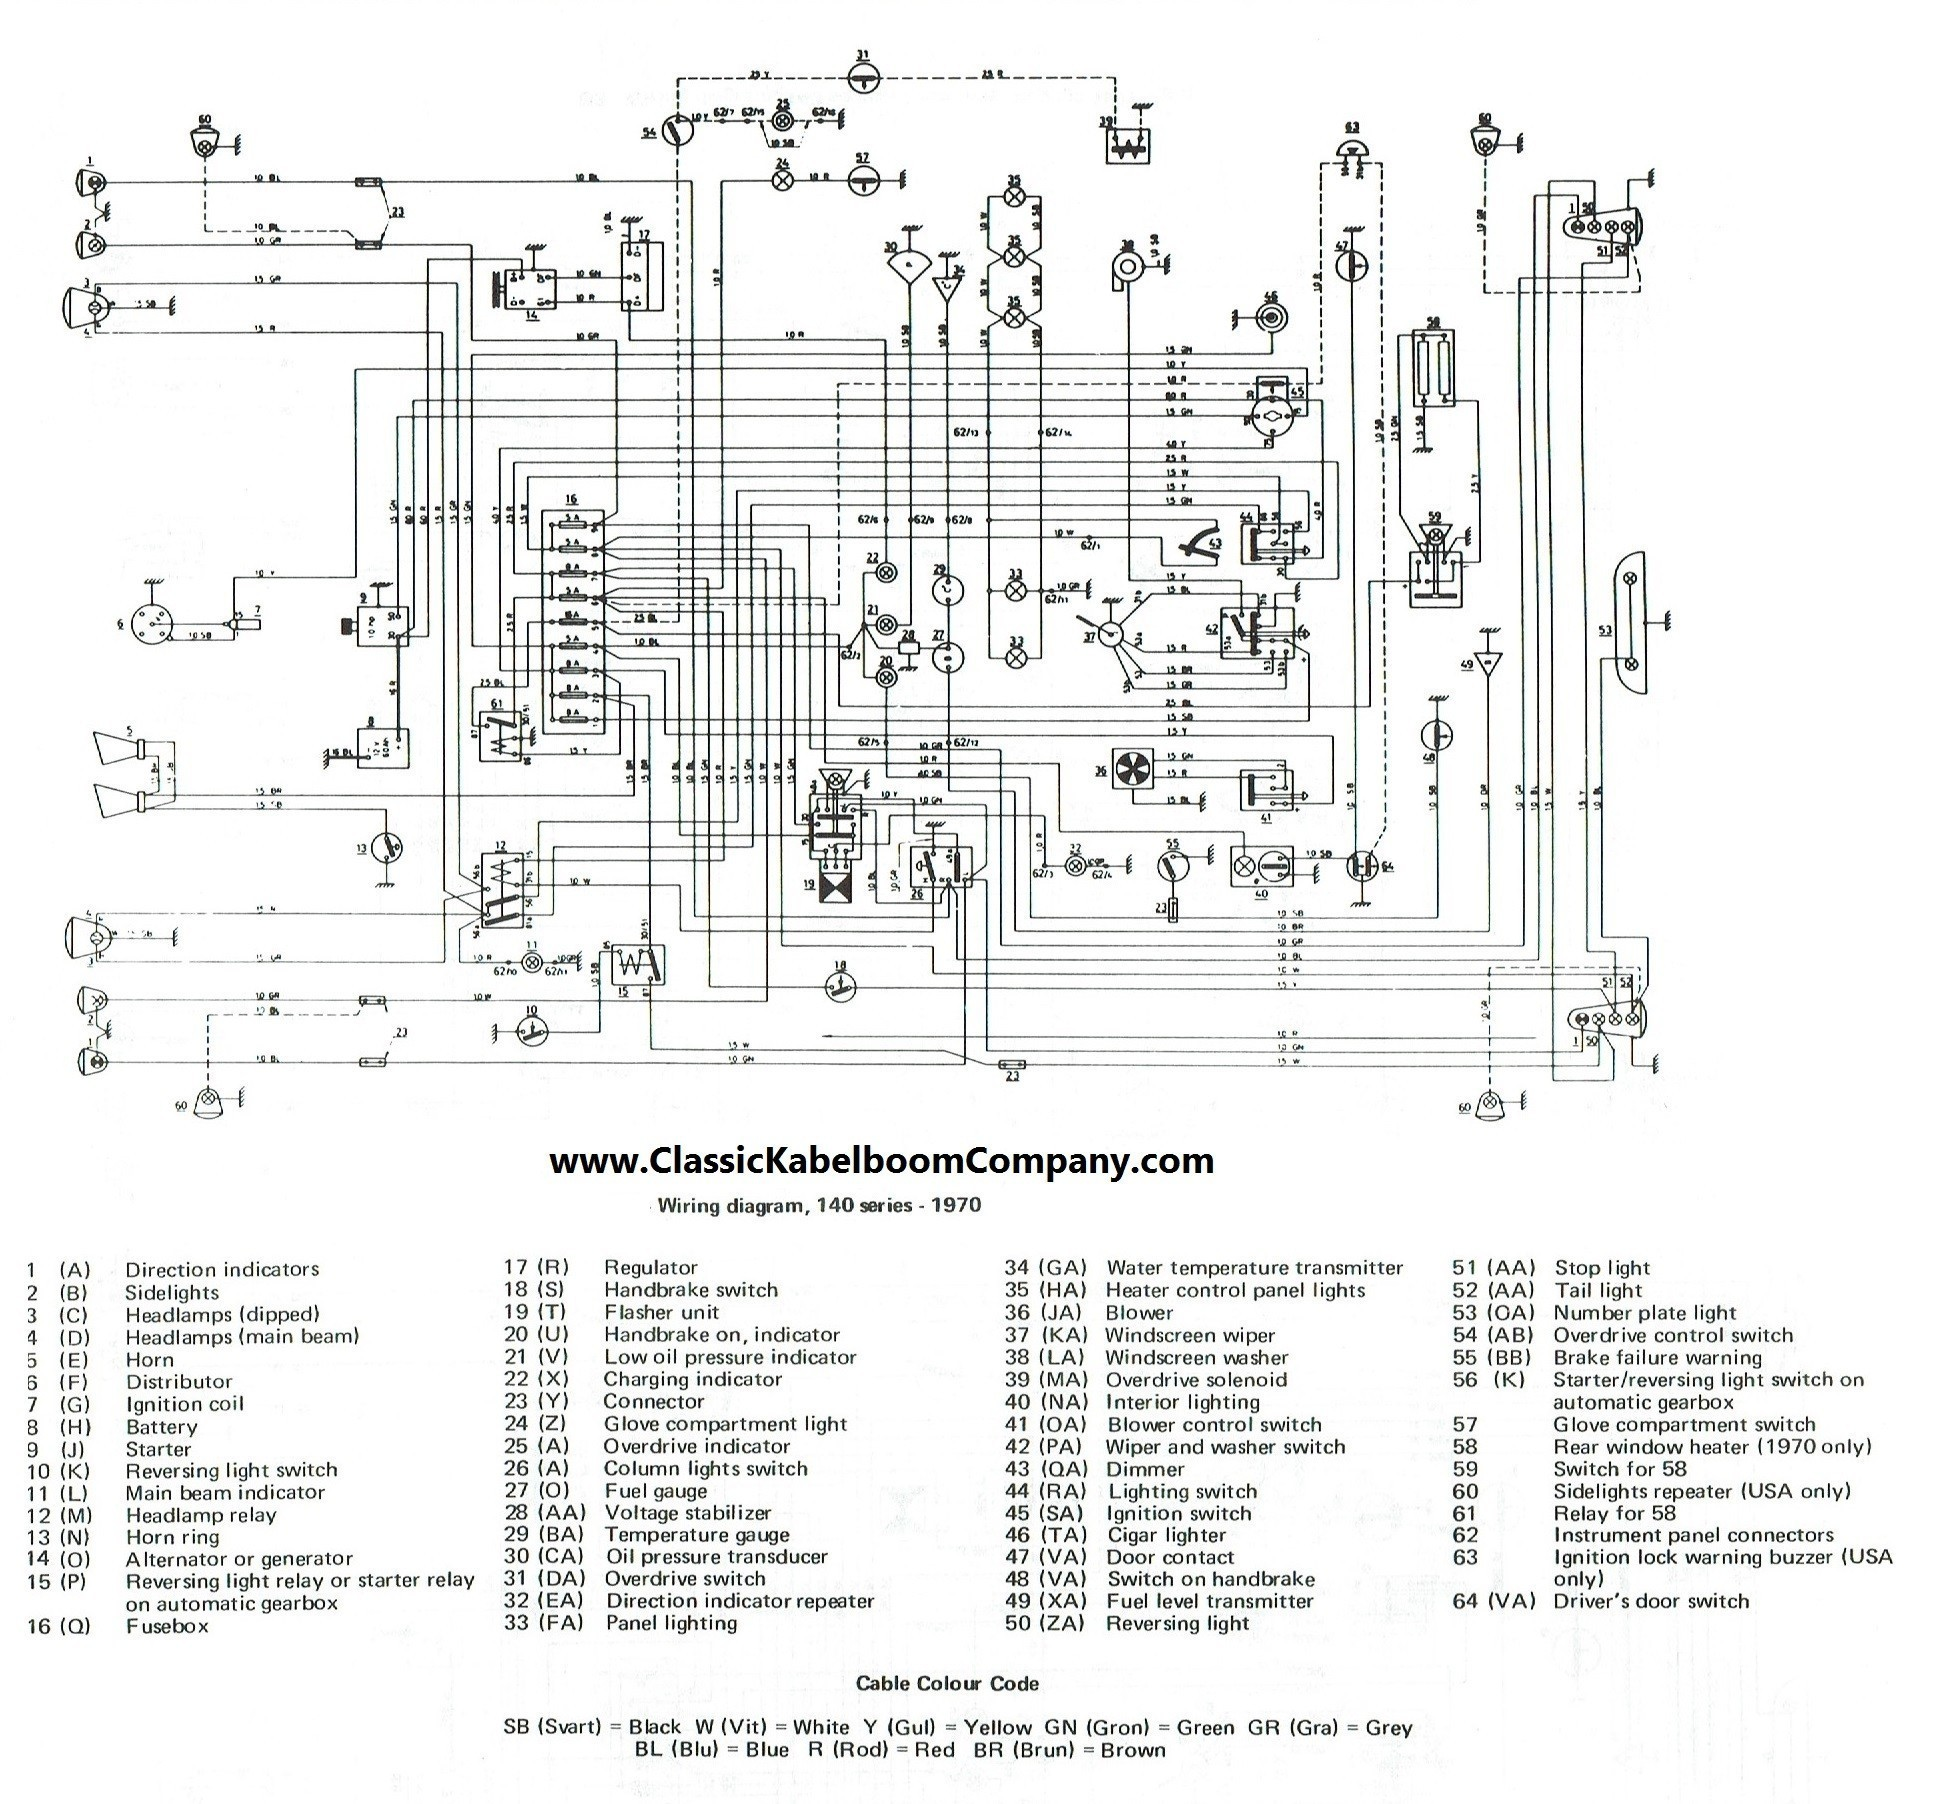 Volvo Penta 5 7 Wiring Diagram - Wiring Diagram Direct blue-course -  blue-course.siciliabeb.it | Volvo Penta 5 0 Gxi Wiring Diagram |  | blue-course.siciliabeb.it